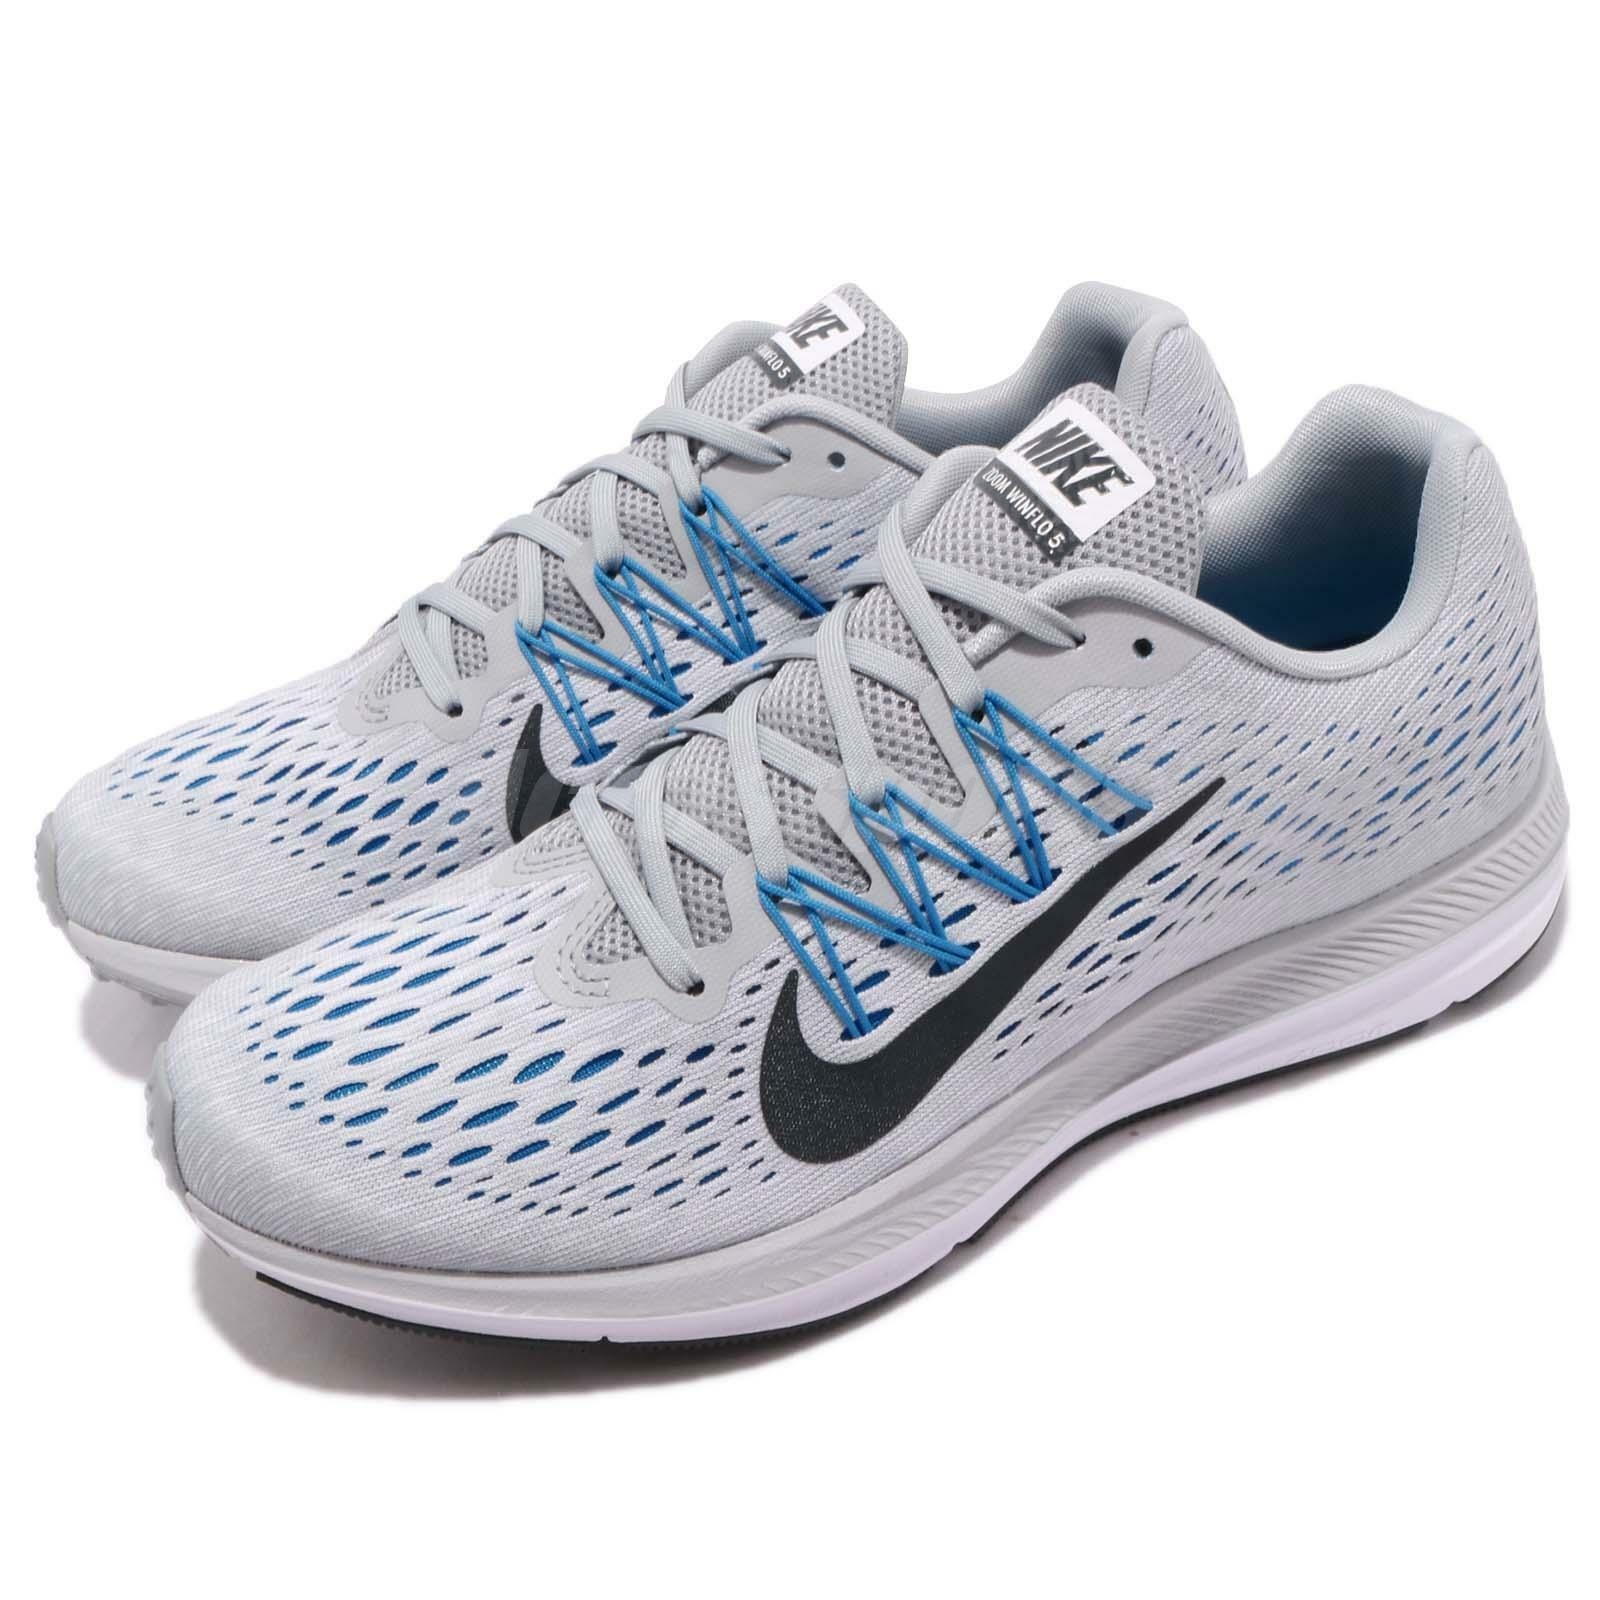 Nike Zoom Winflo 5 V Grey blueee Anthracite Men Running shoes Sneakers AA7406-003